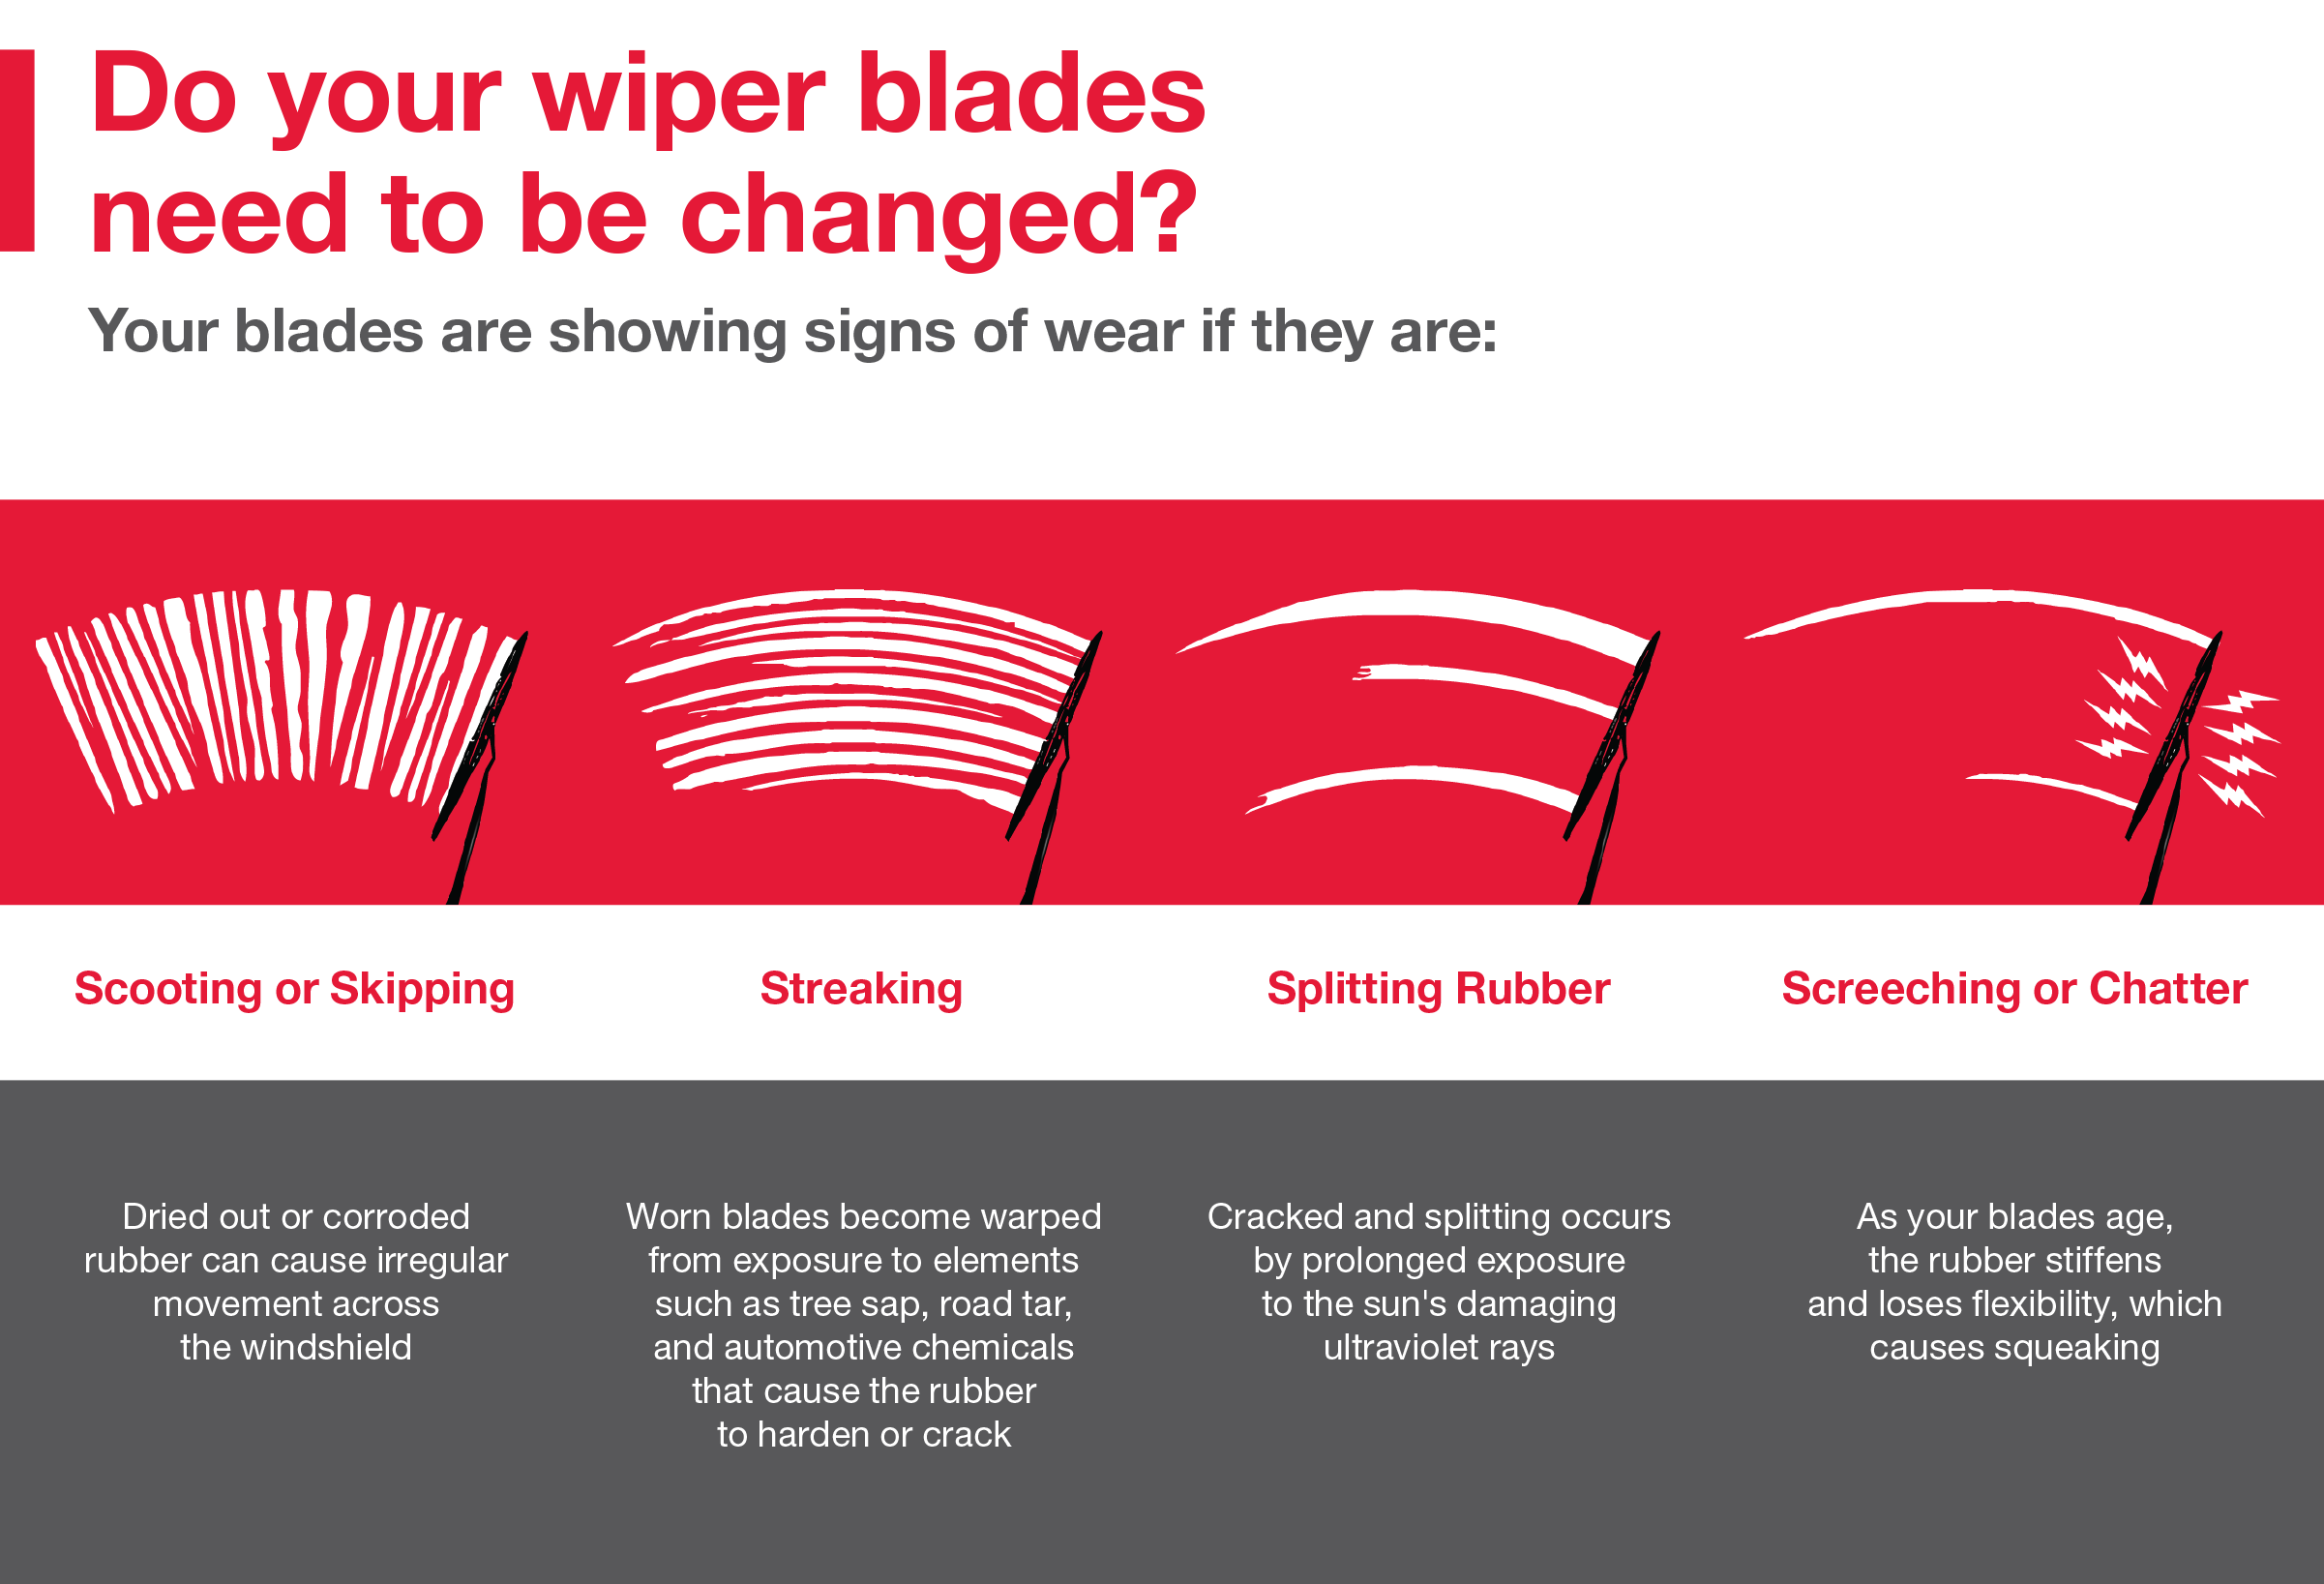 Do your wiper blades need to be changed? Call your local dealer for more info: 888.696.4482